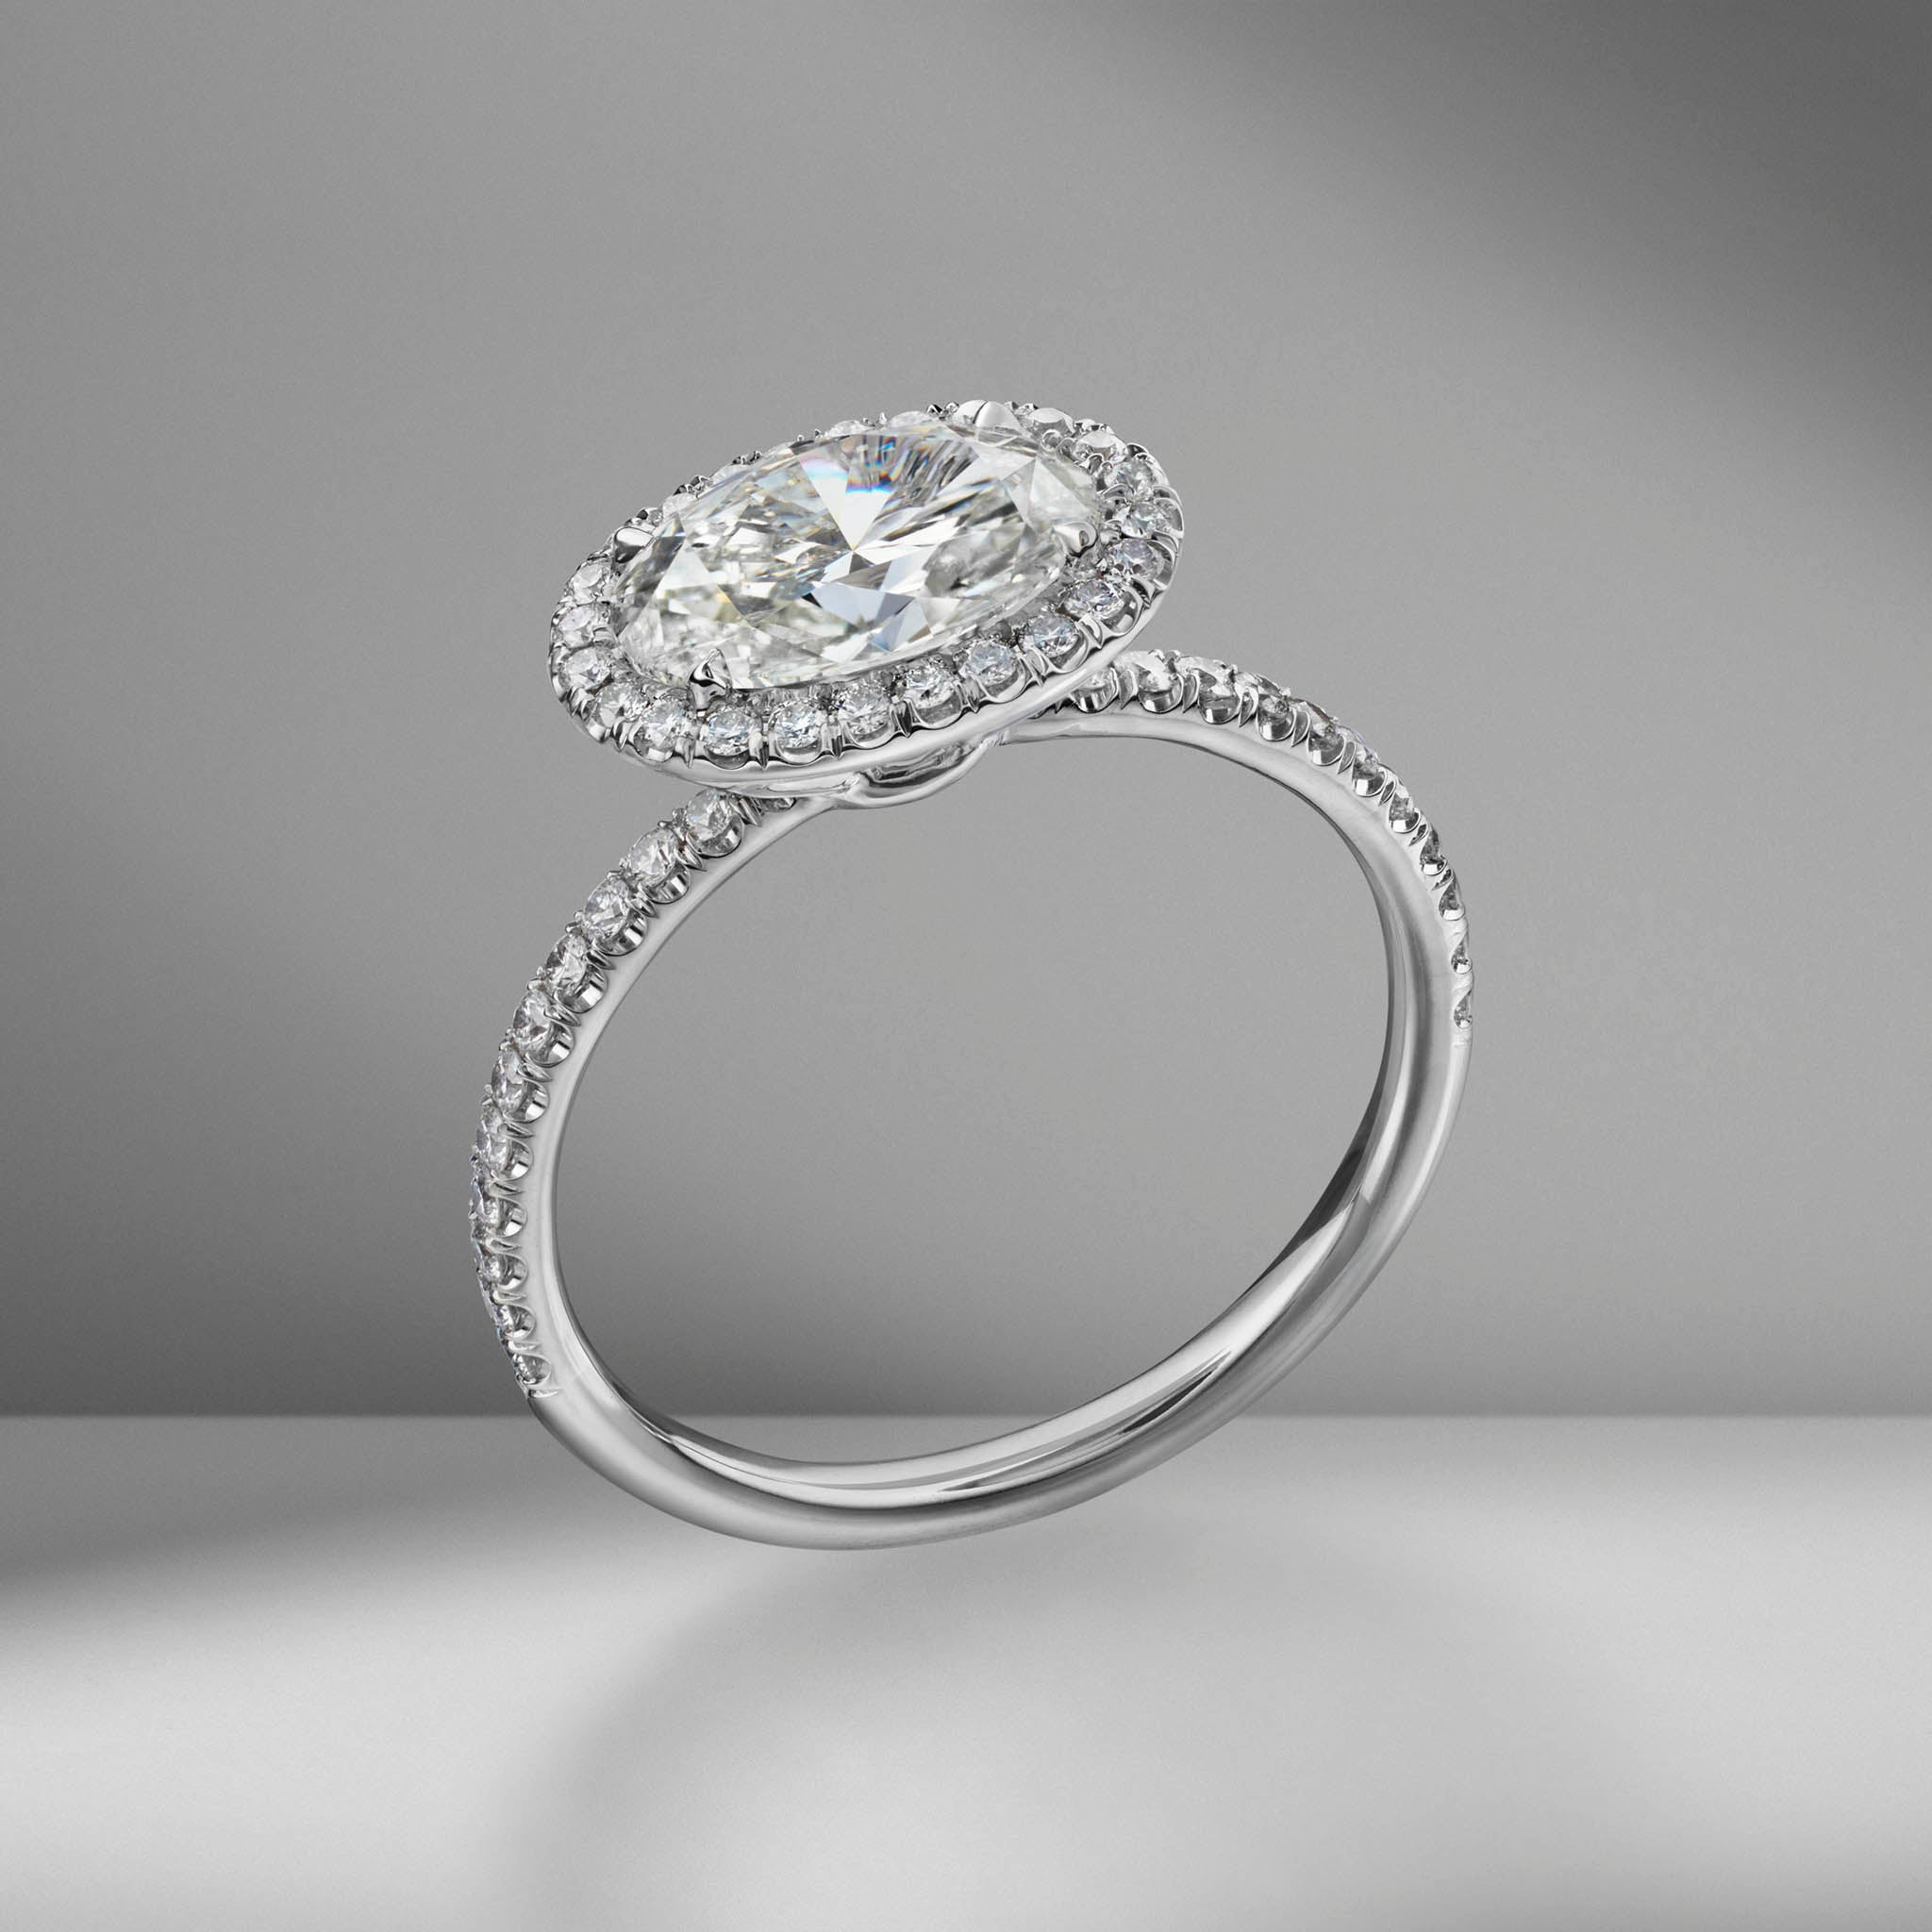 East-West Oval Cut Engagement Ring with Pavé Halo